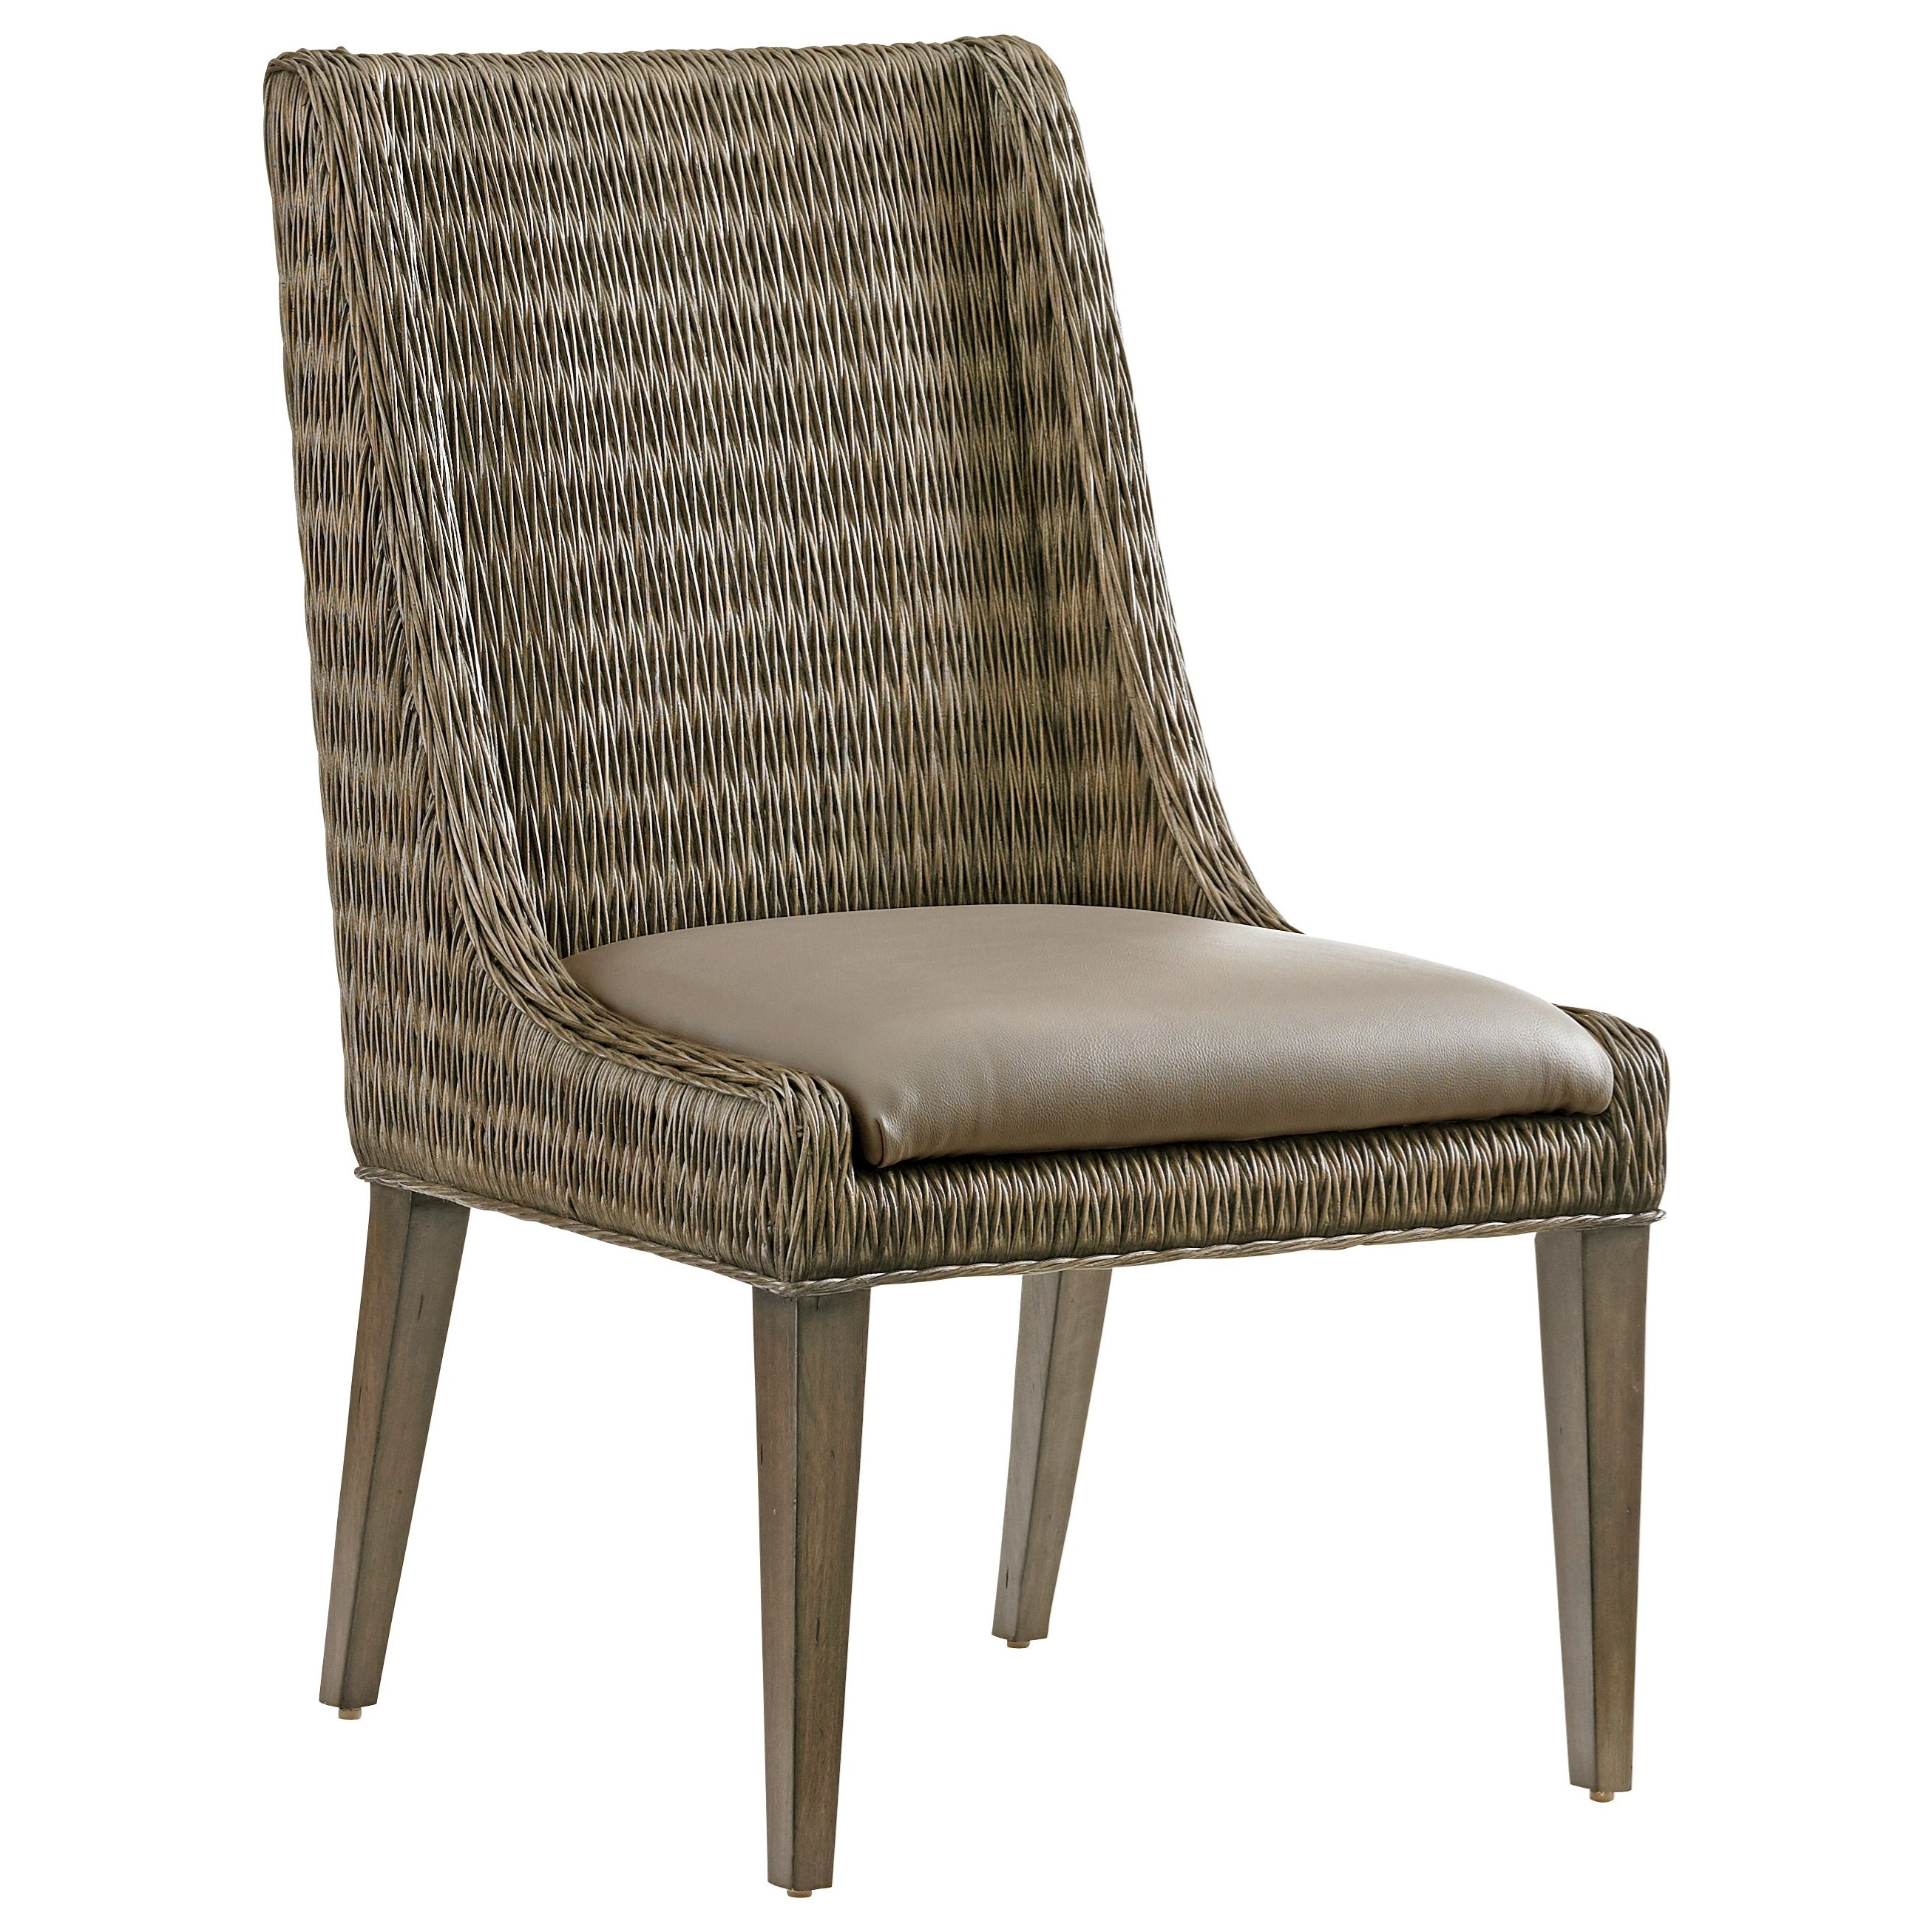 Cypress Point Brandon Woven Side Chair by Tommy Bahama Home at Baer's Furniture